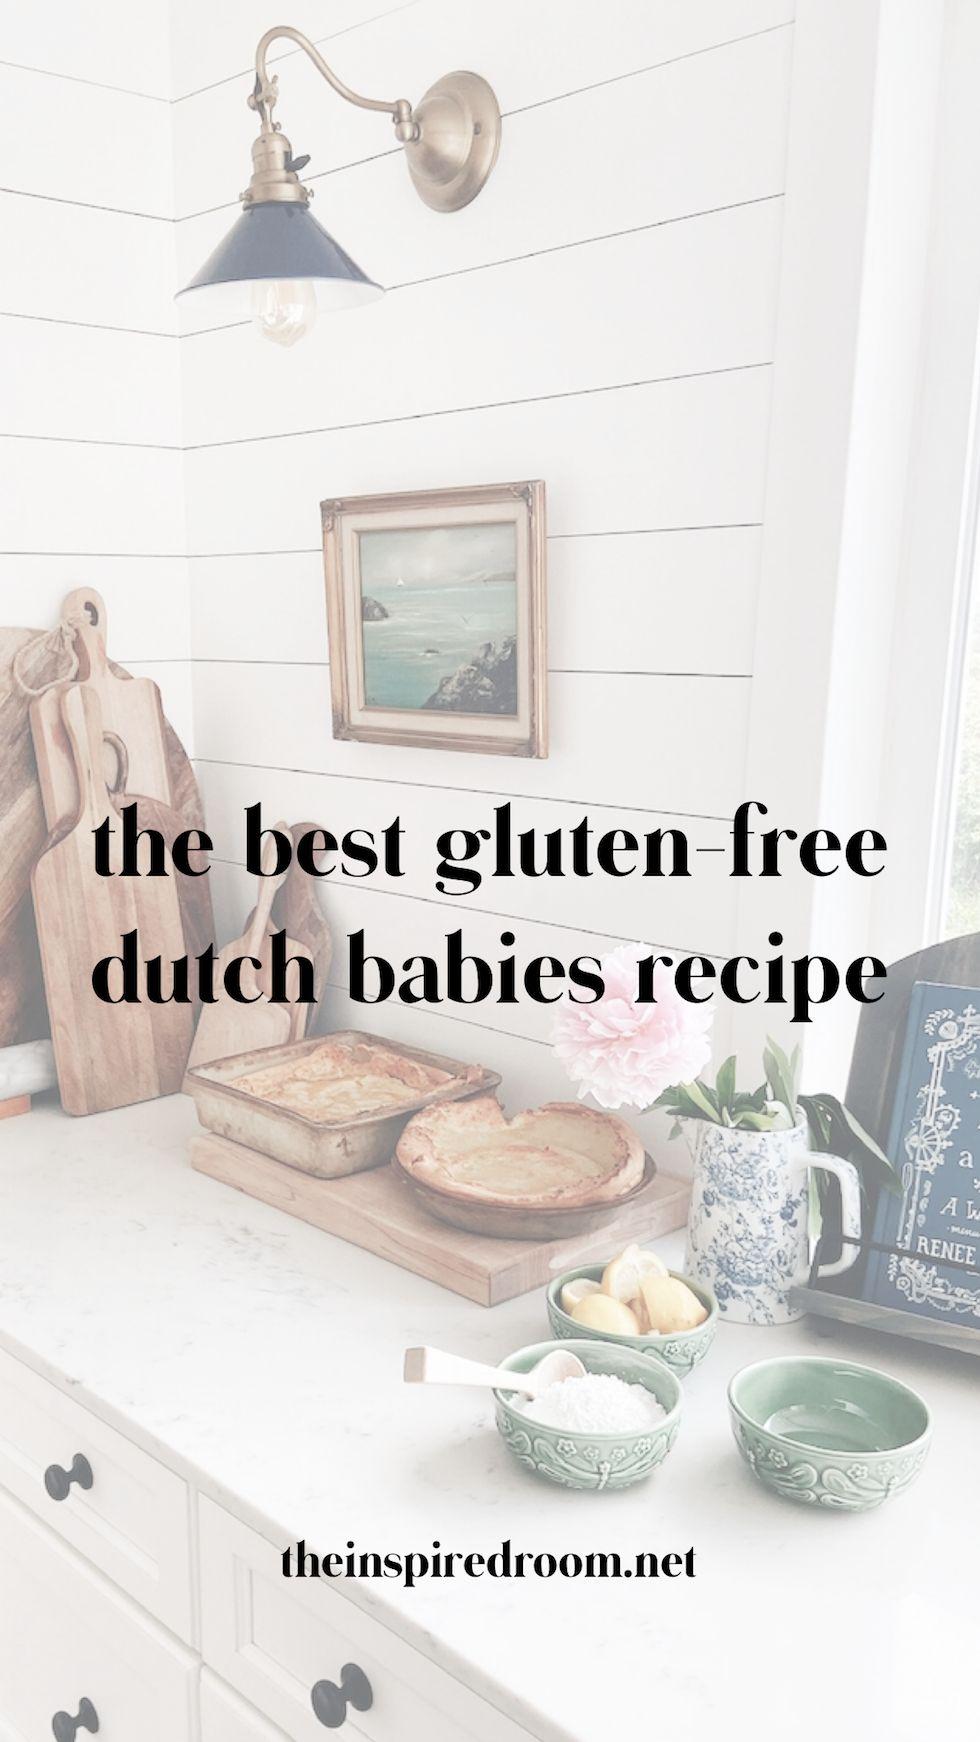 The Best Gluten-Free Dutch Baby Recipe